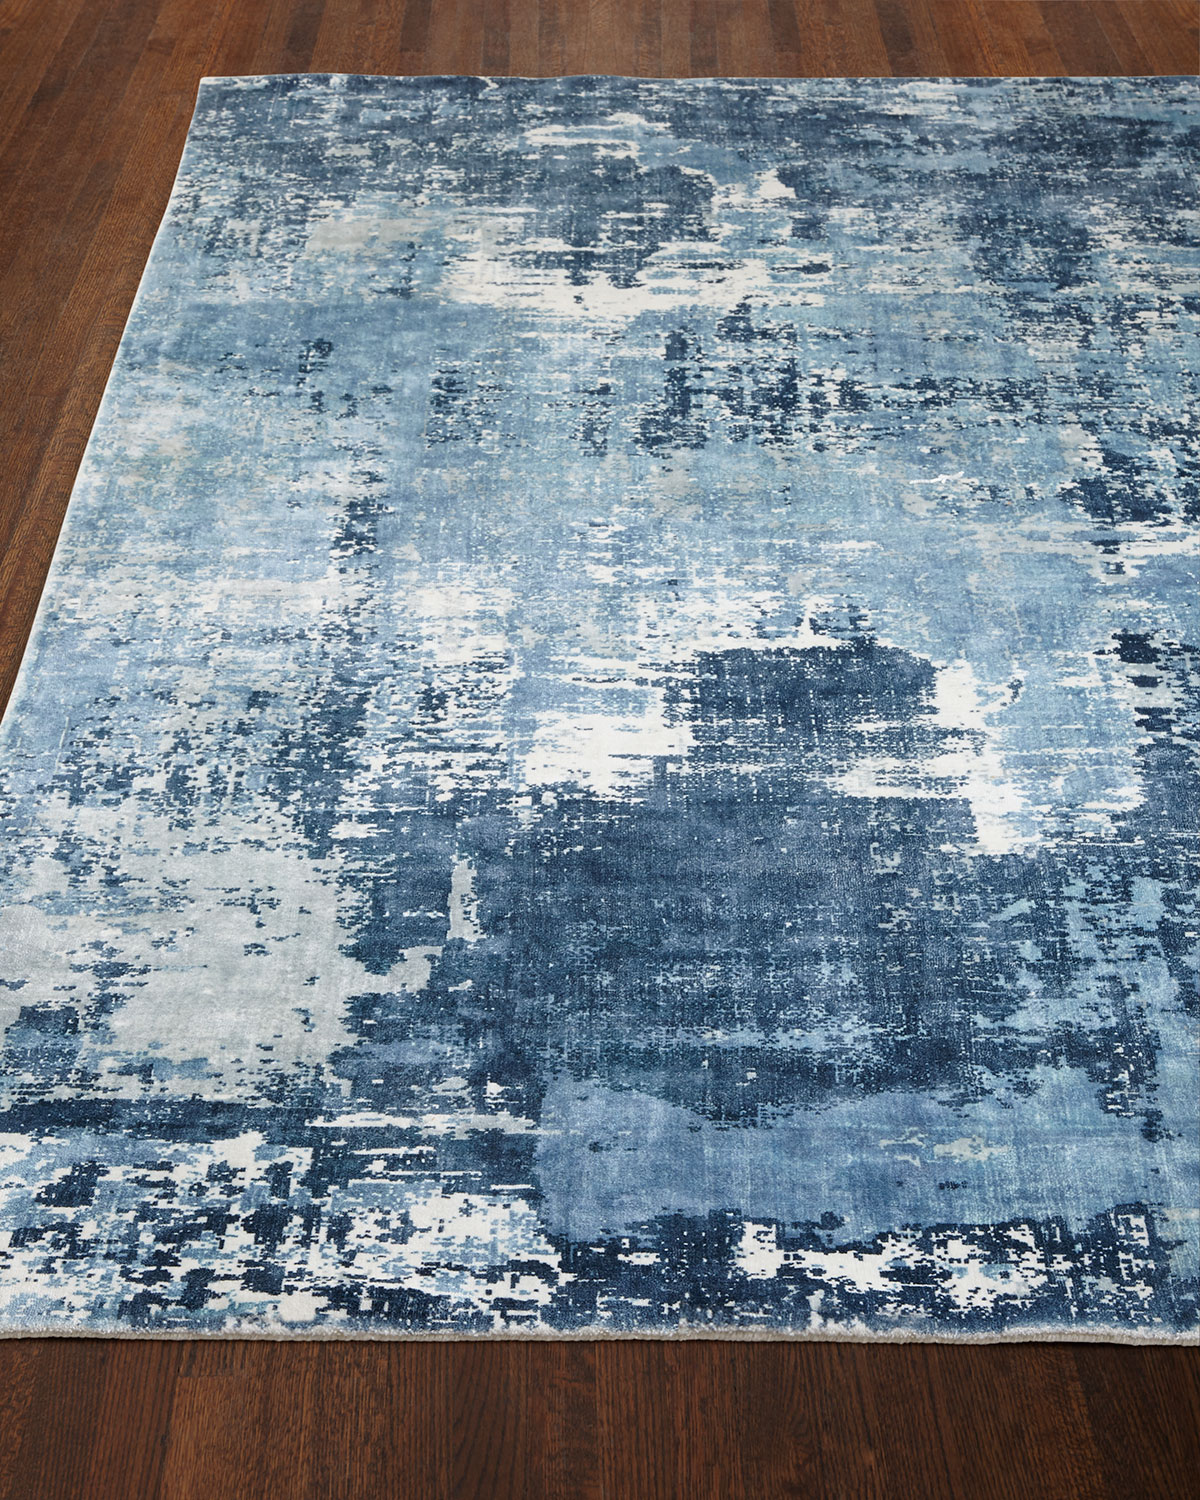 Exquisite Rugs Blue Horizon Rug, 8' x 10'